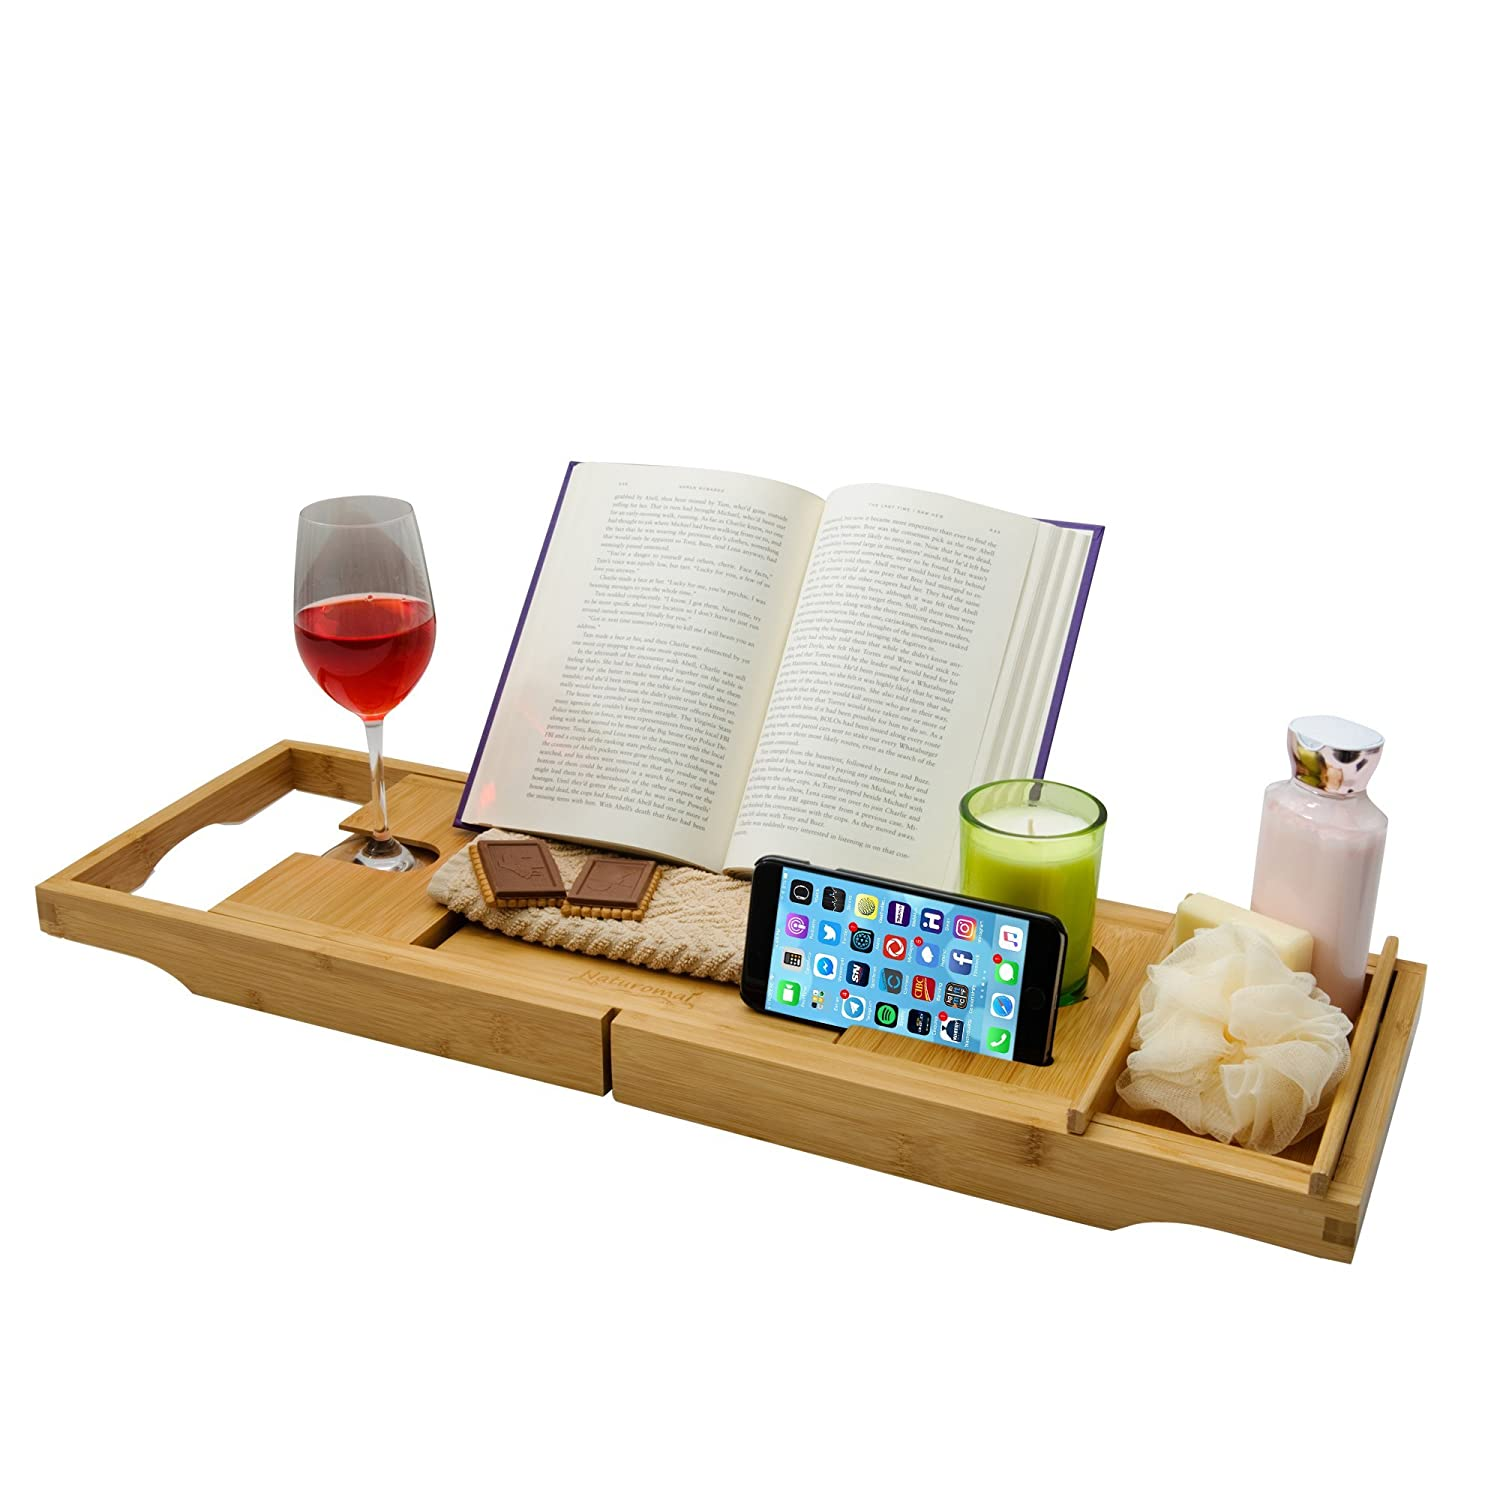 Luxury Bamboo Bathtub Caddy Tray with Non-Slip Rubber Grips. Includes Book/Tablet Holder with Splash Guard, Wine Glass Holder and Removable Side Tray. Extendable to fit Most Tubs. Naturomai